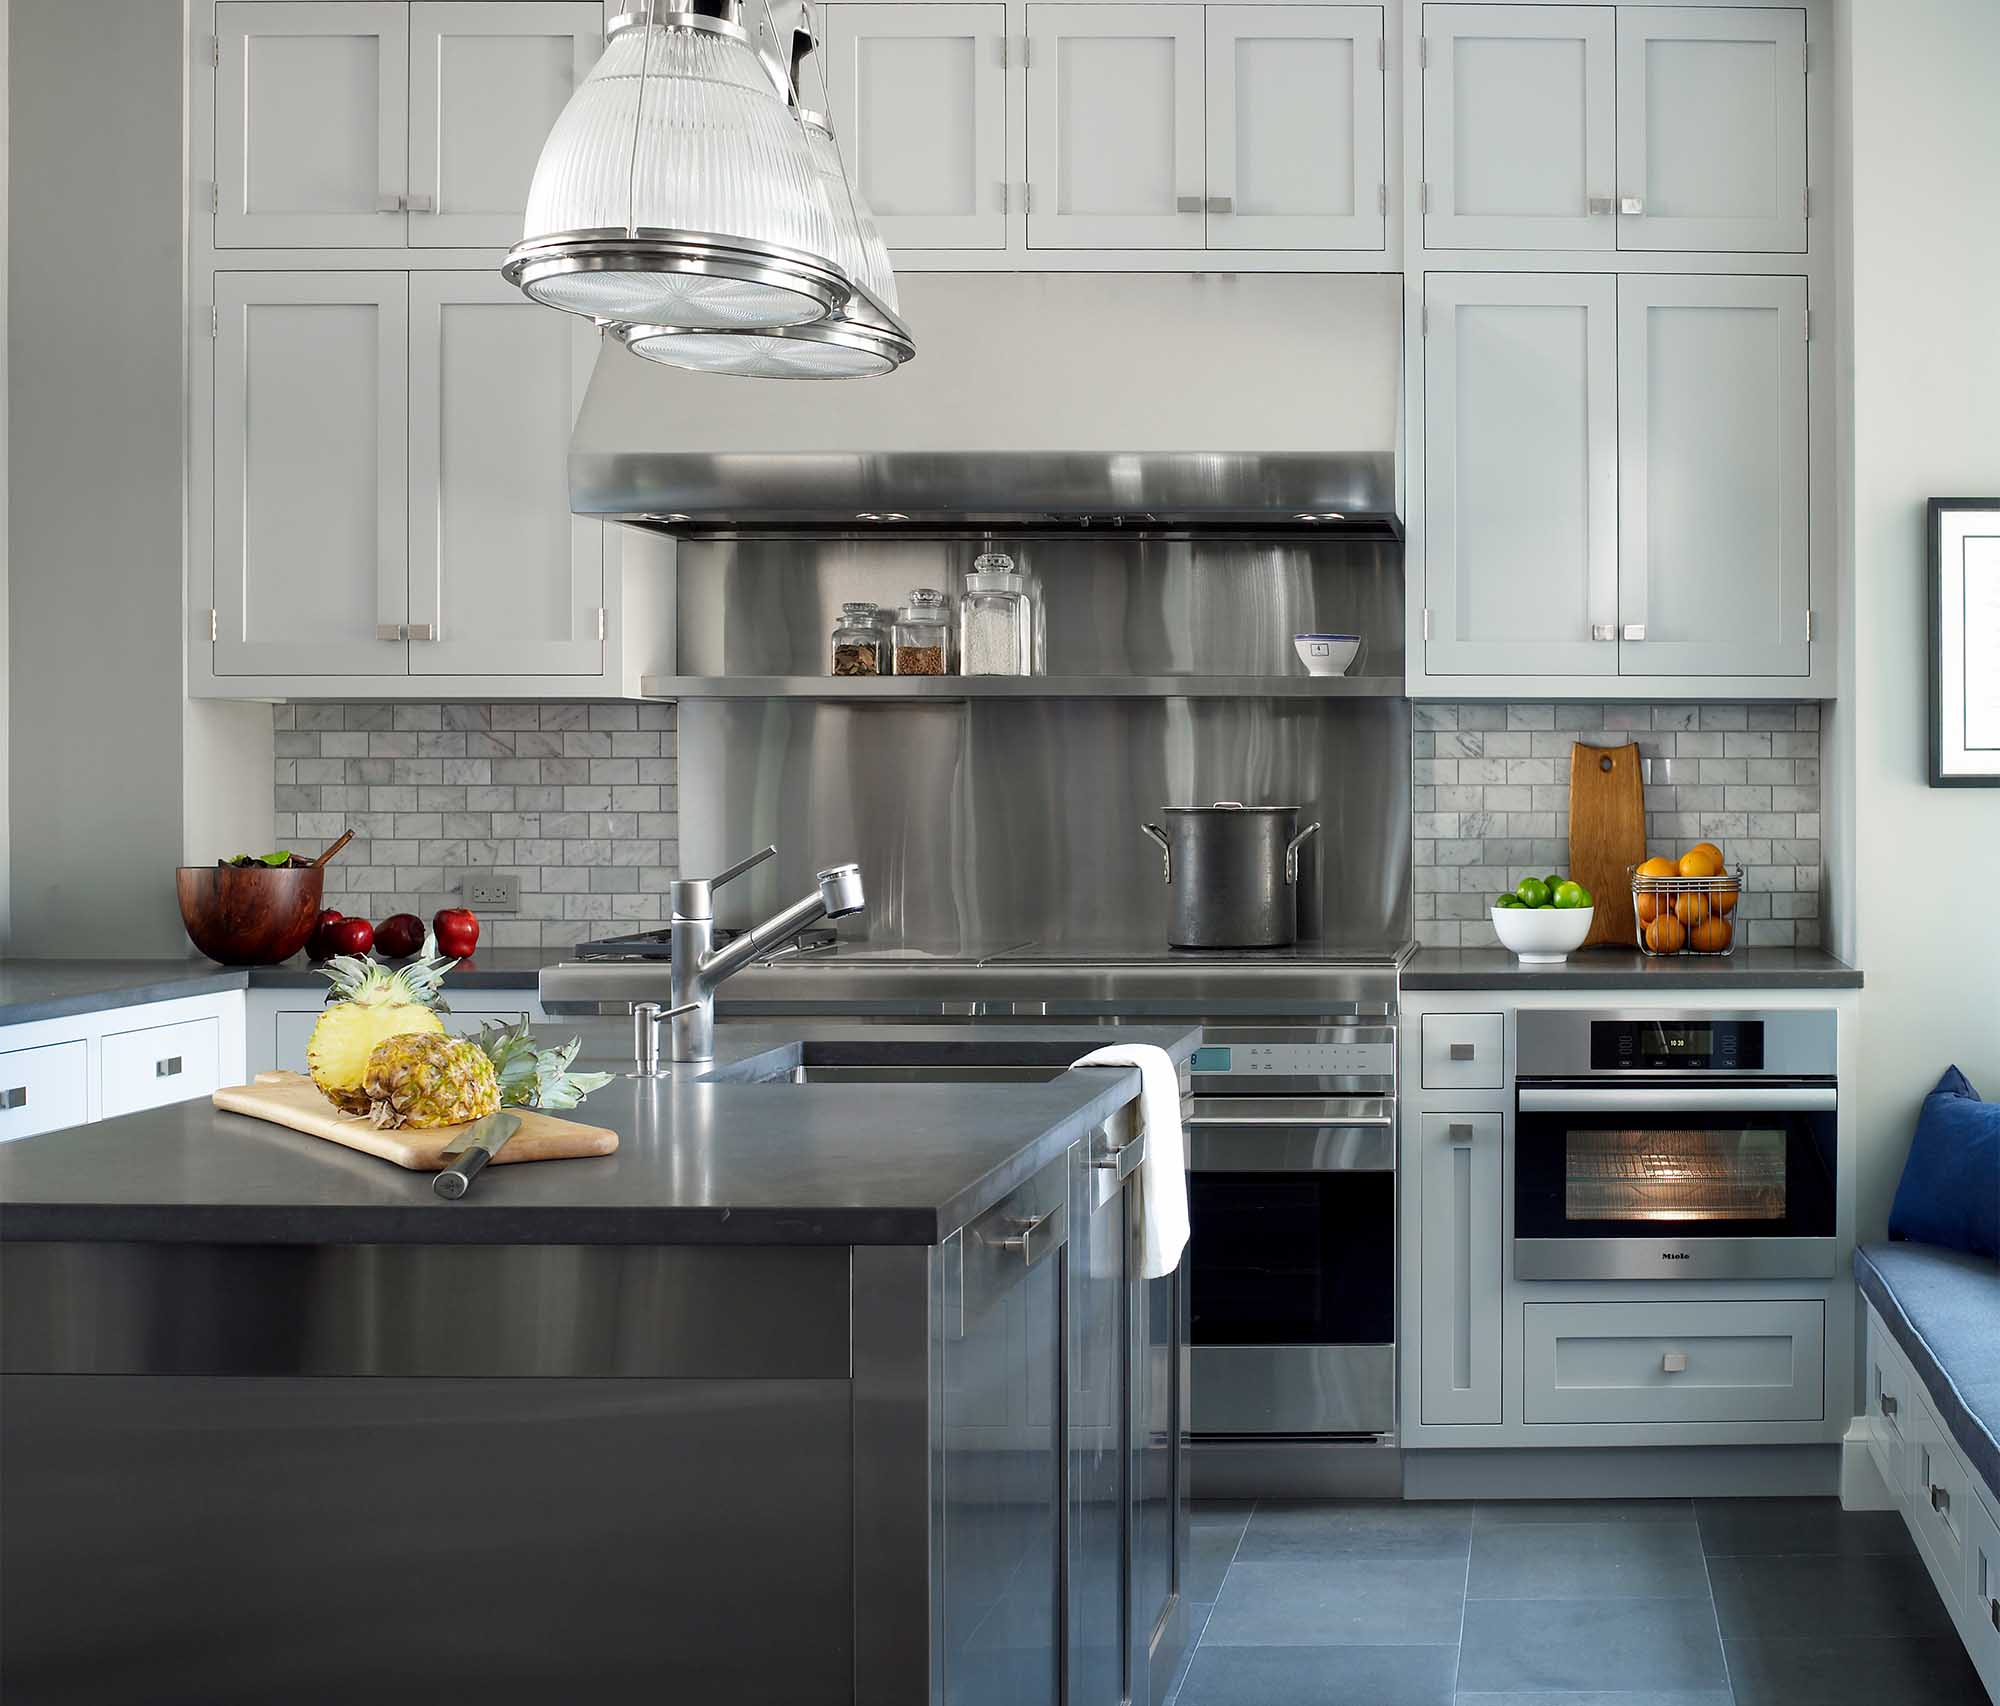 79th Street Apartment, Lenox Hill, Manhattan, Central Park transitional, kitchen, white, stainless steel island